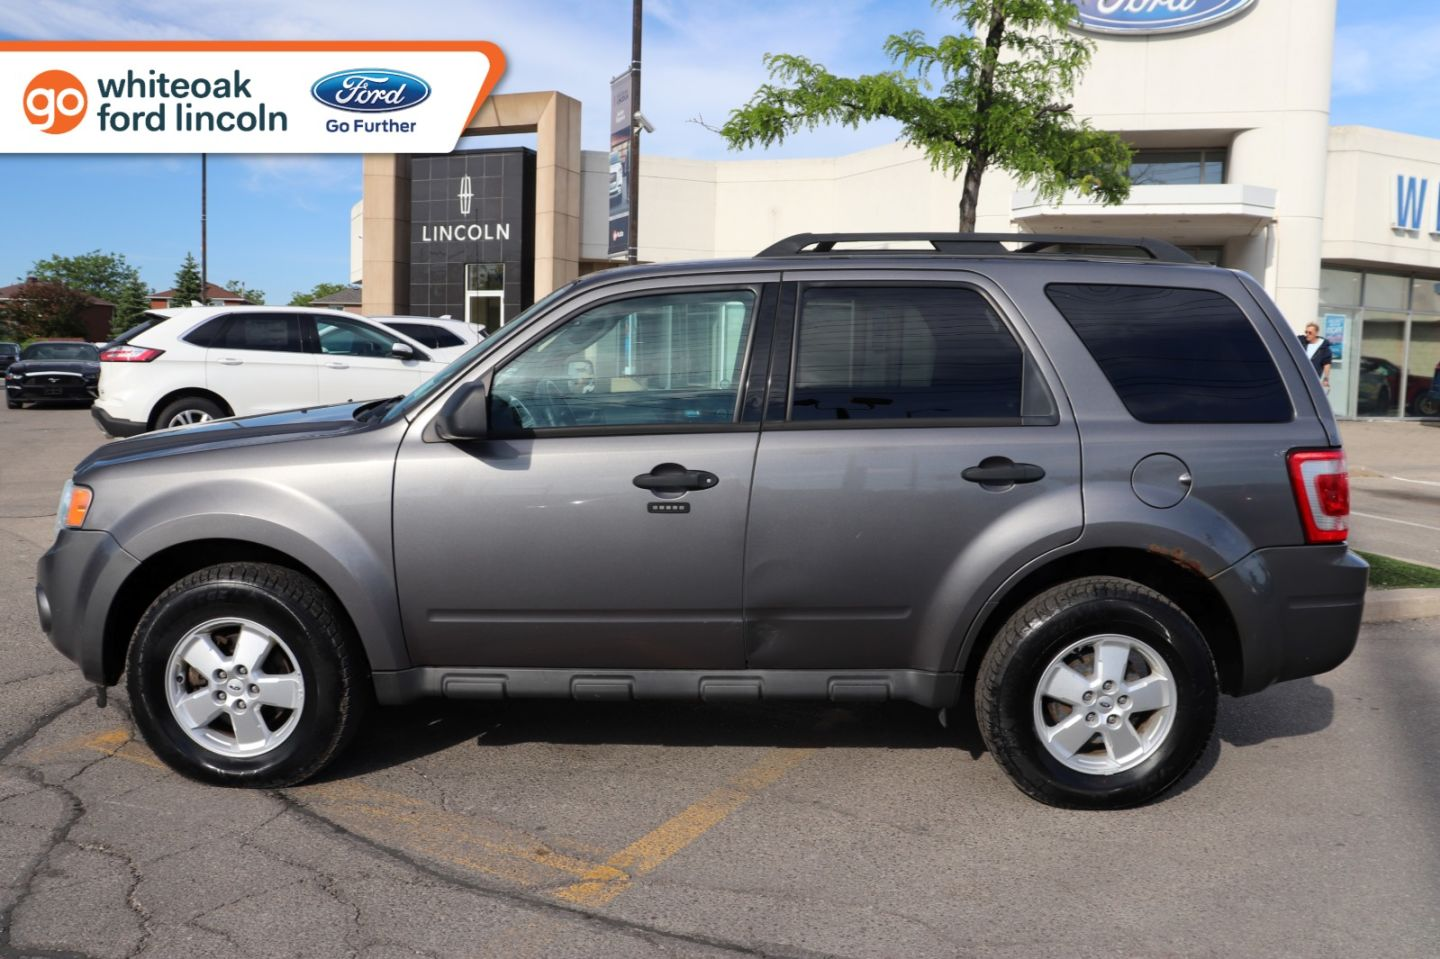 2010 Ford Escape XLT for sale in Mississauga, Ontario